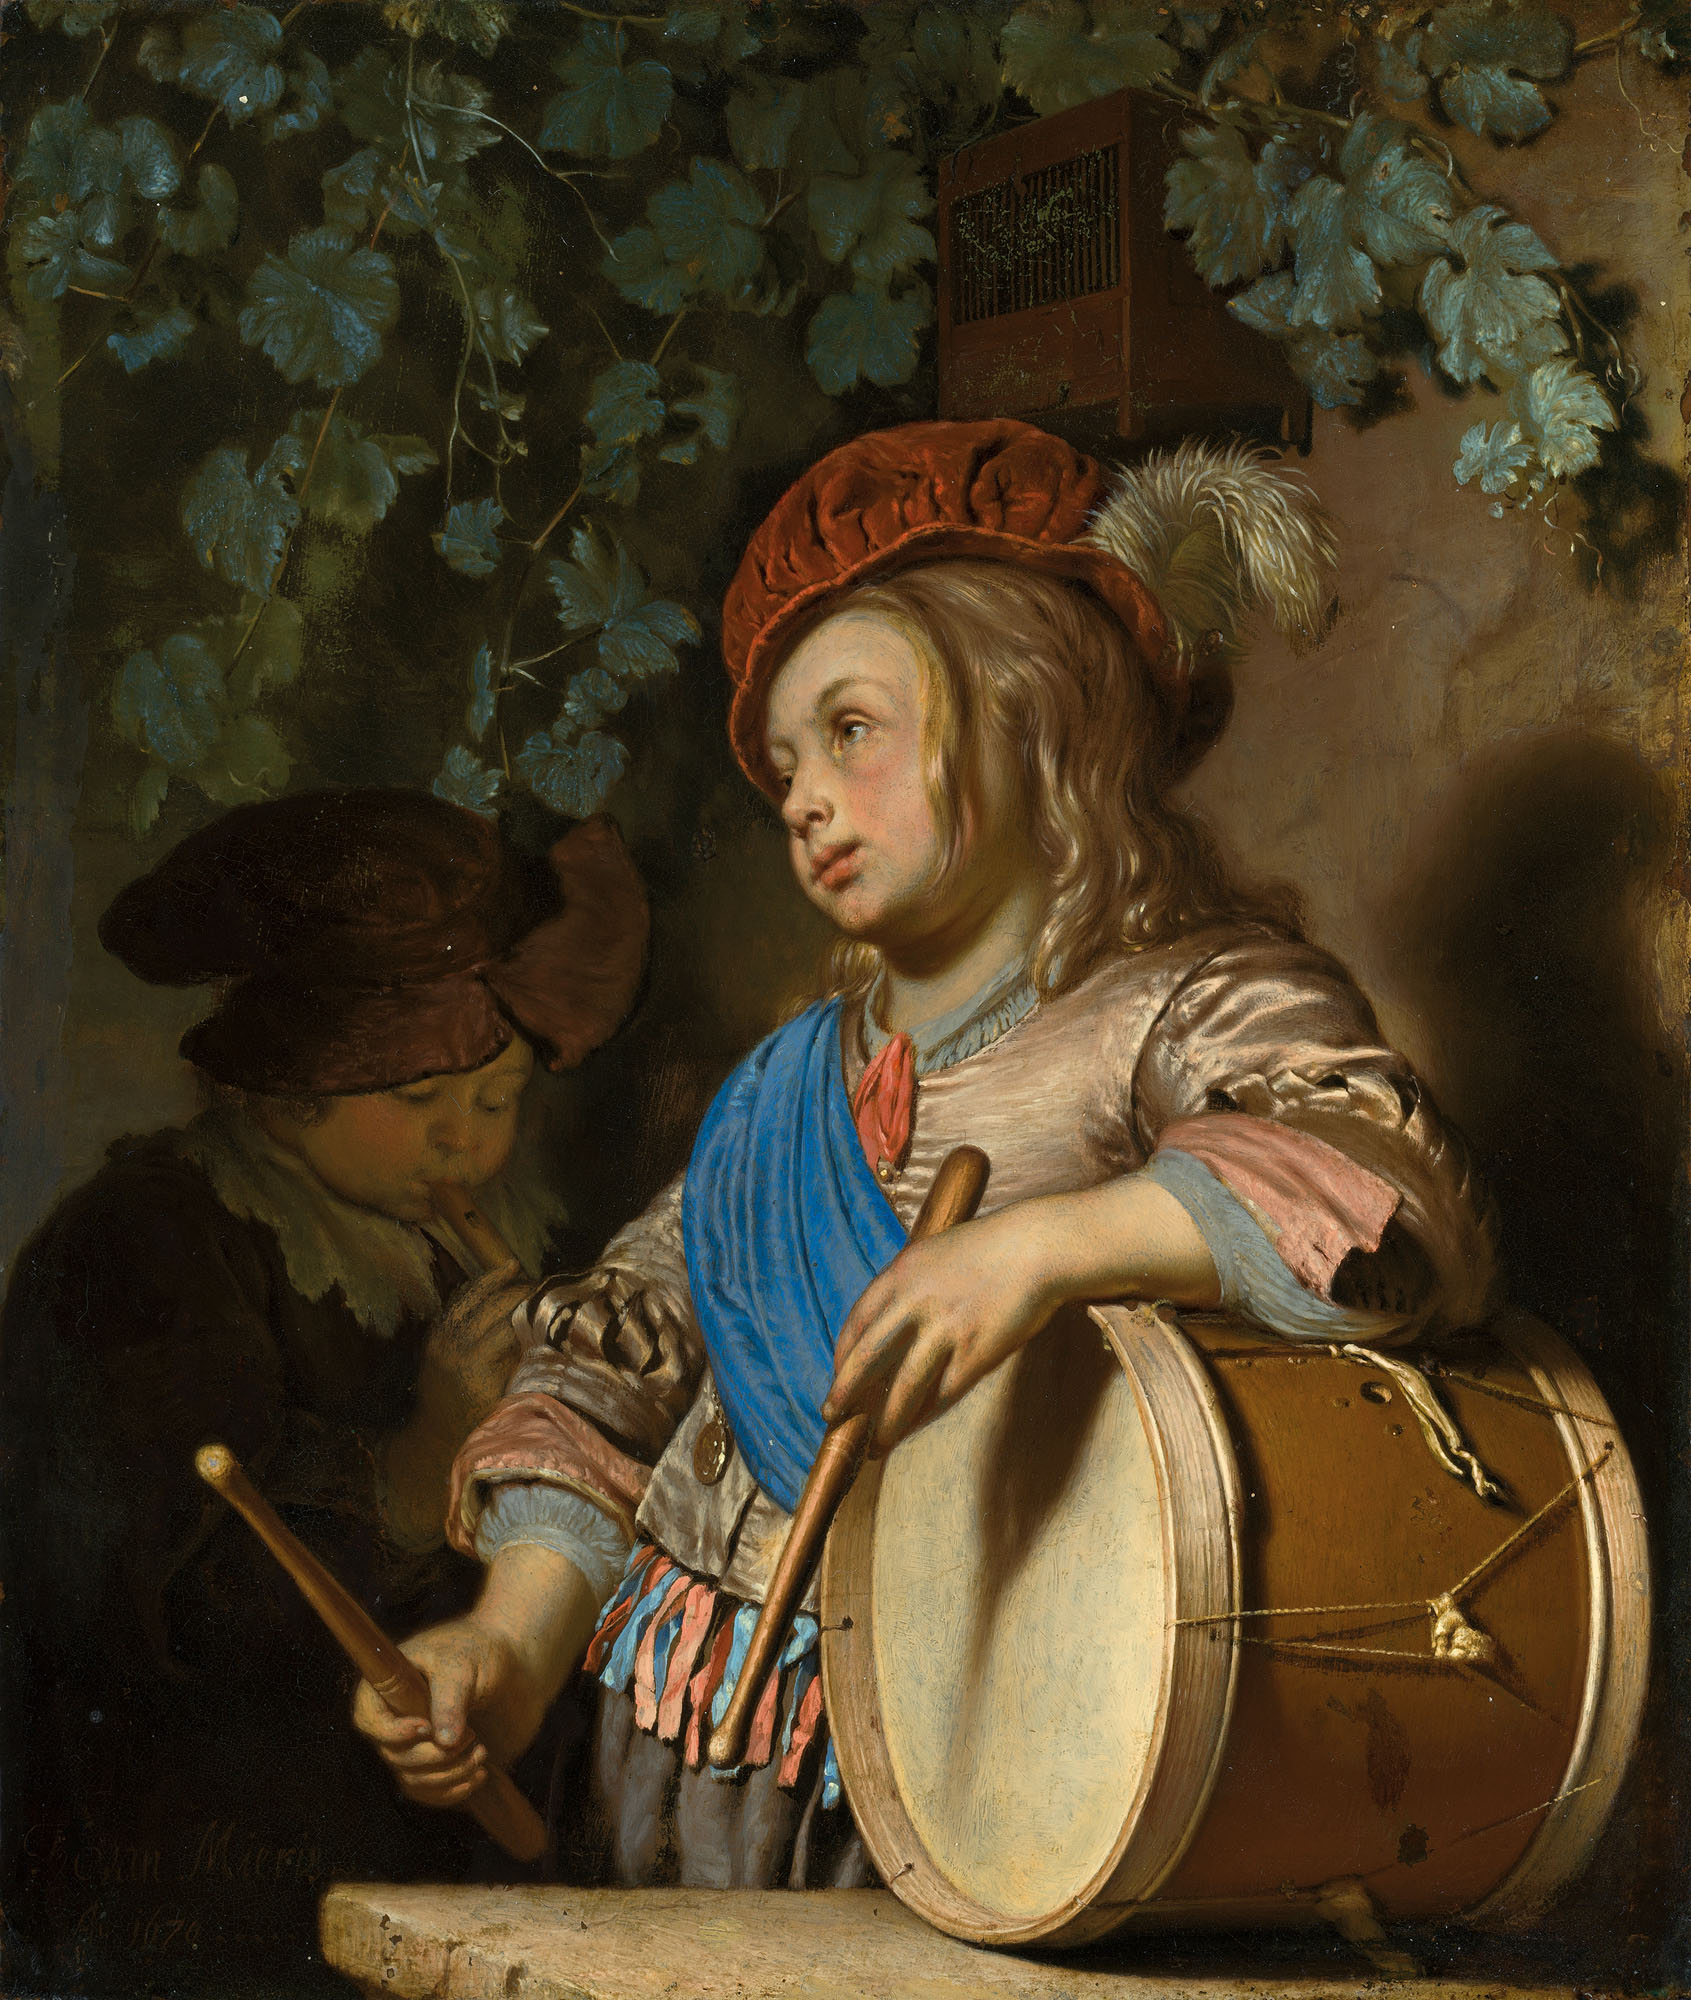 FRANS VAN MIERIS, THE ELDER (LEIDEN 1631-1685)